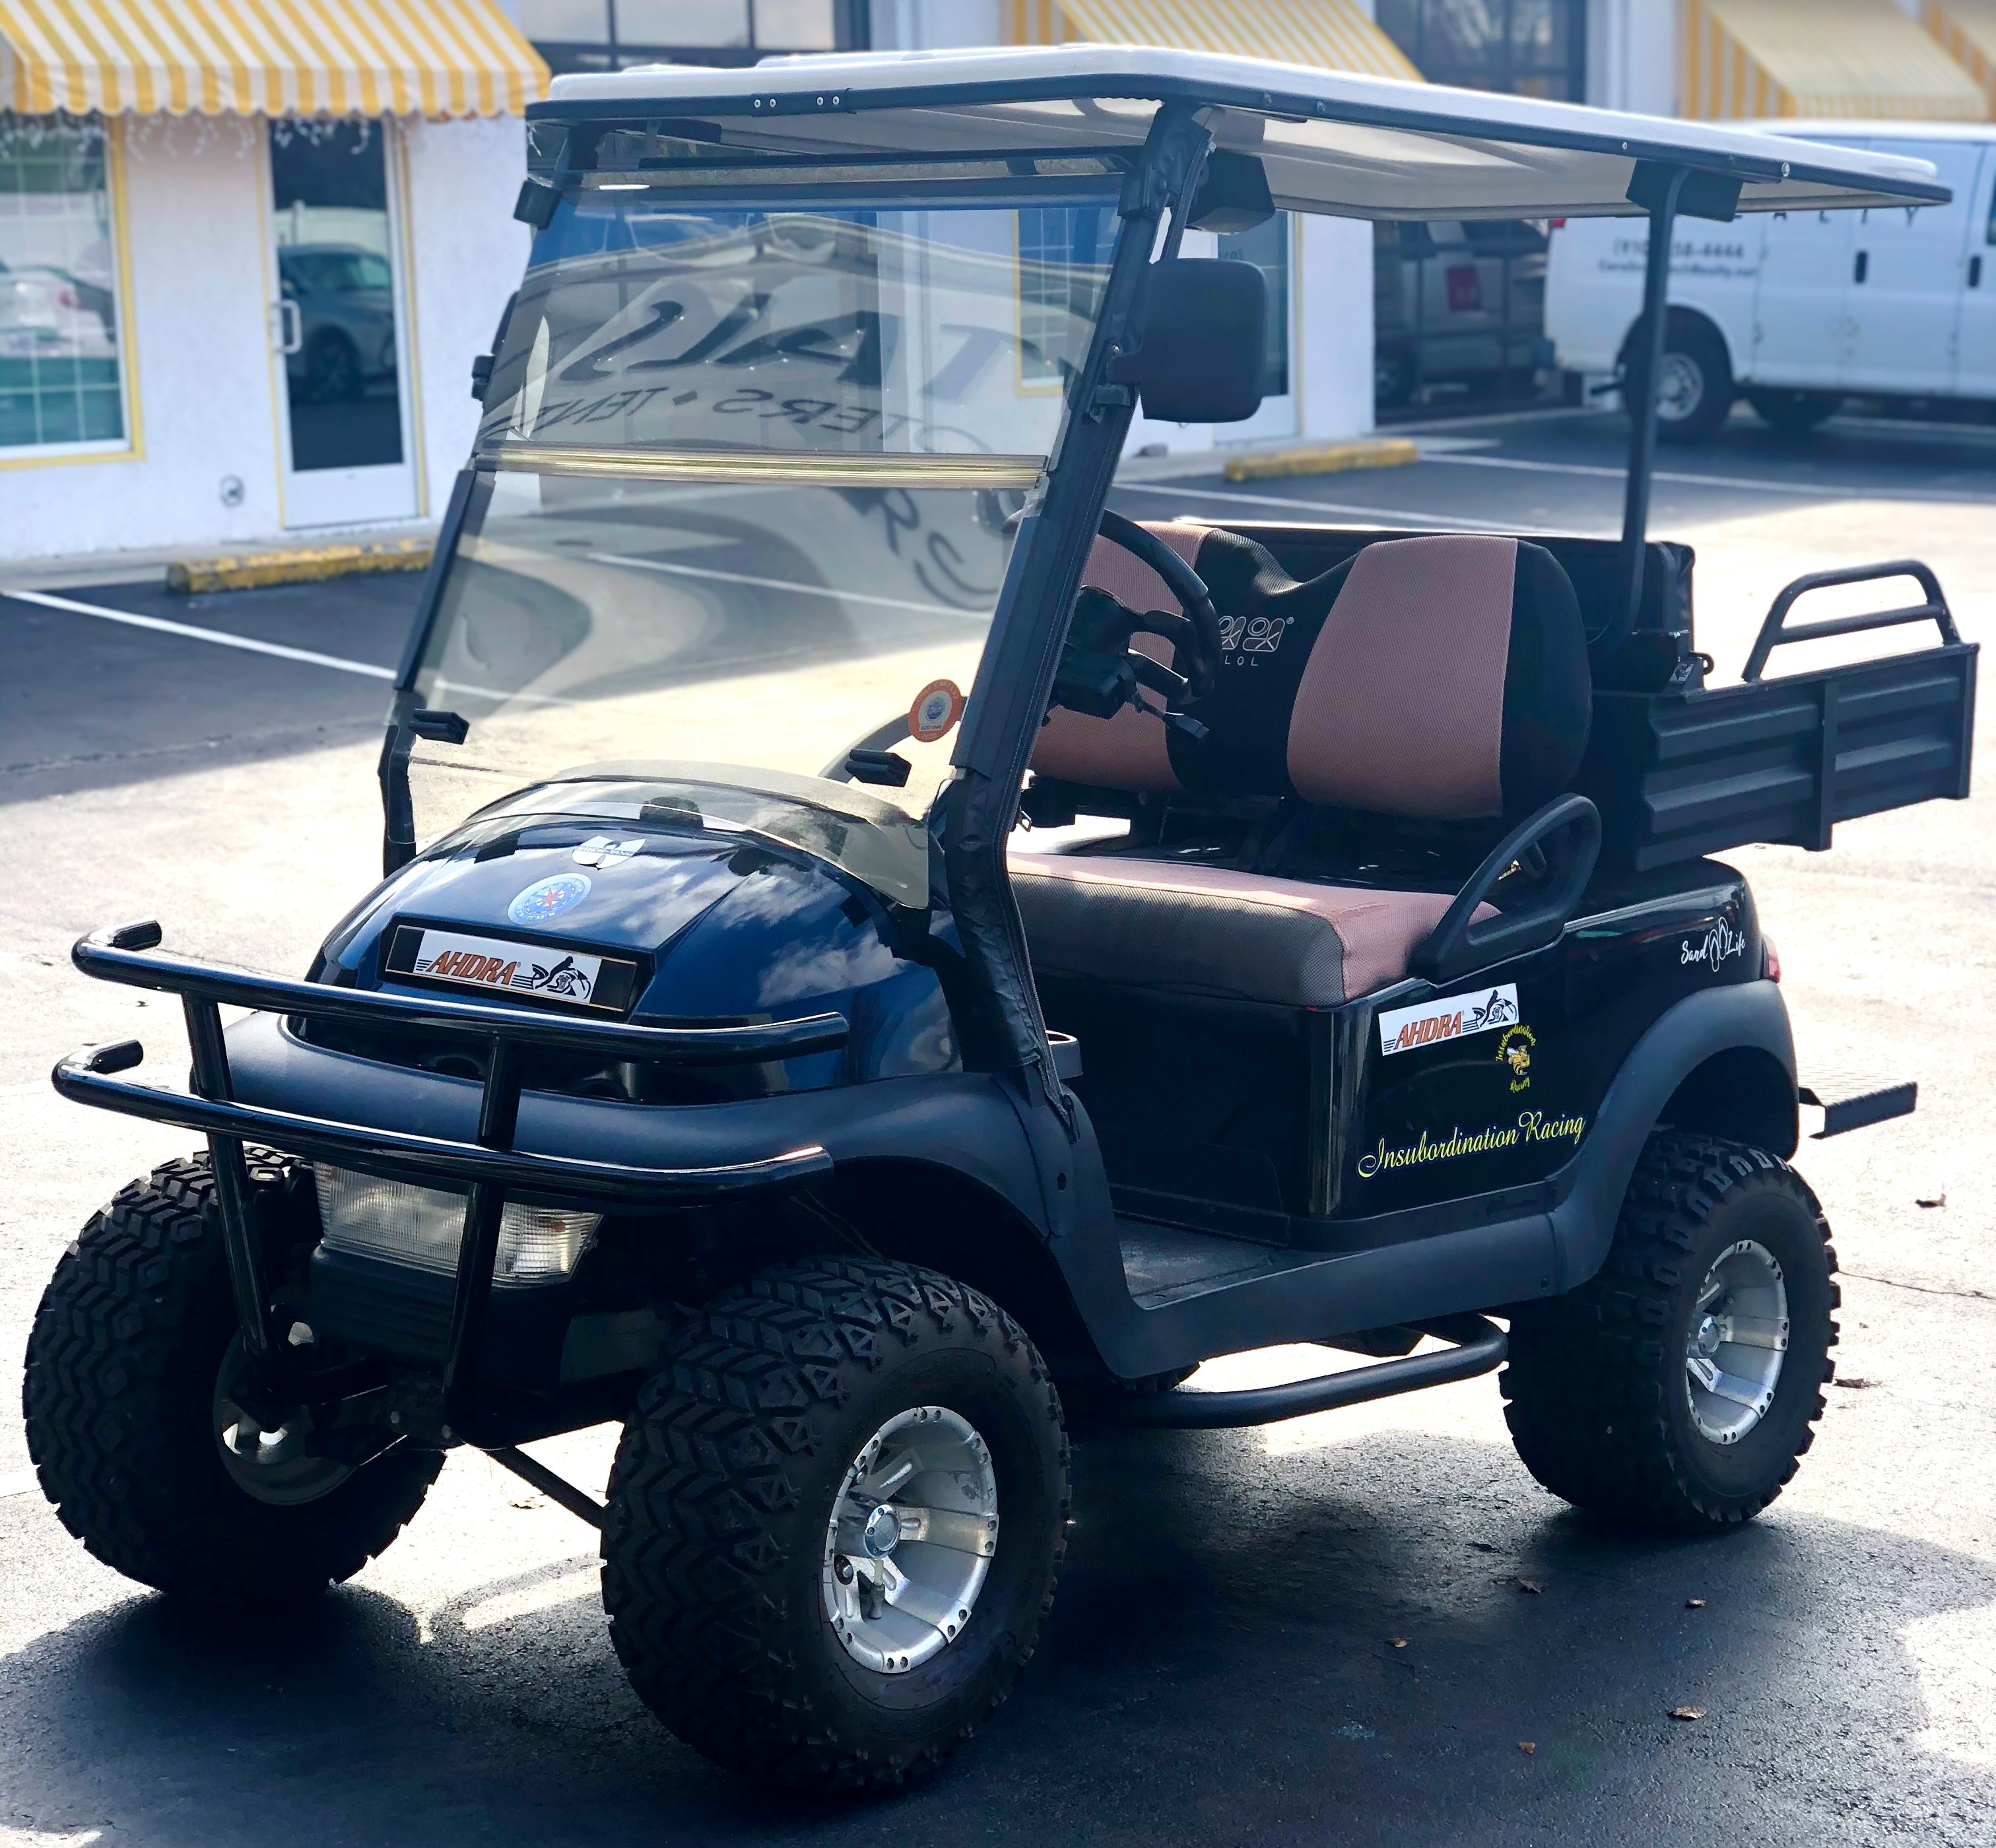 4 PASSENGER LIFTED CLUB CAR GAS CART WITH UTILITY BED **CONSIGNMENT**